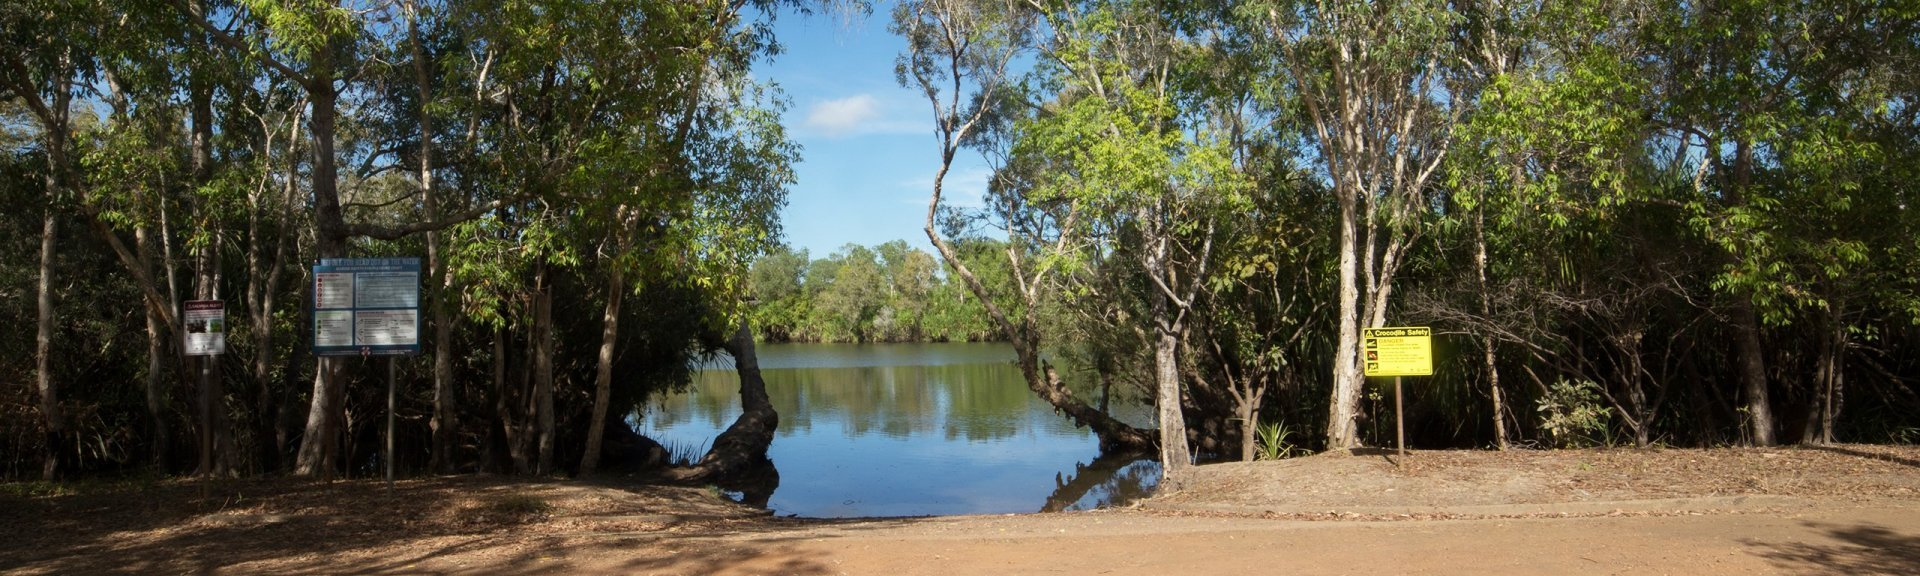 Jim Jim Billabong Campground. Photo by Parks Australia.